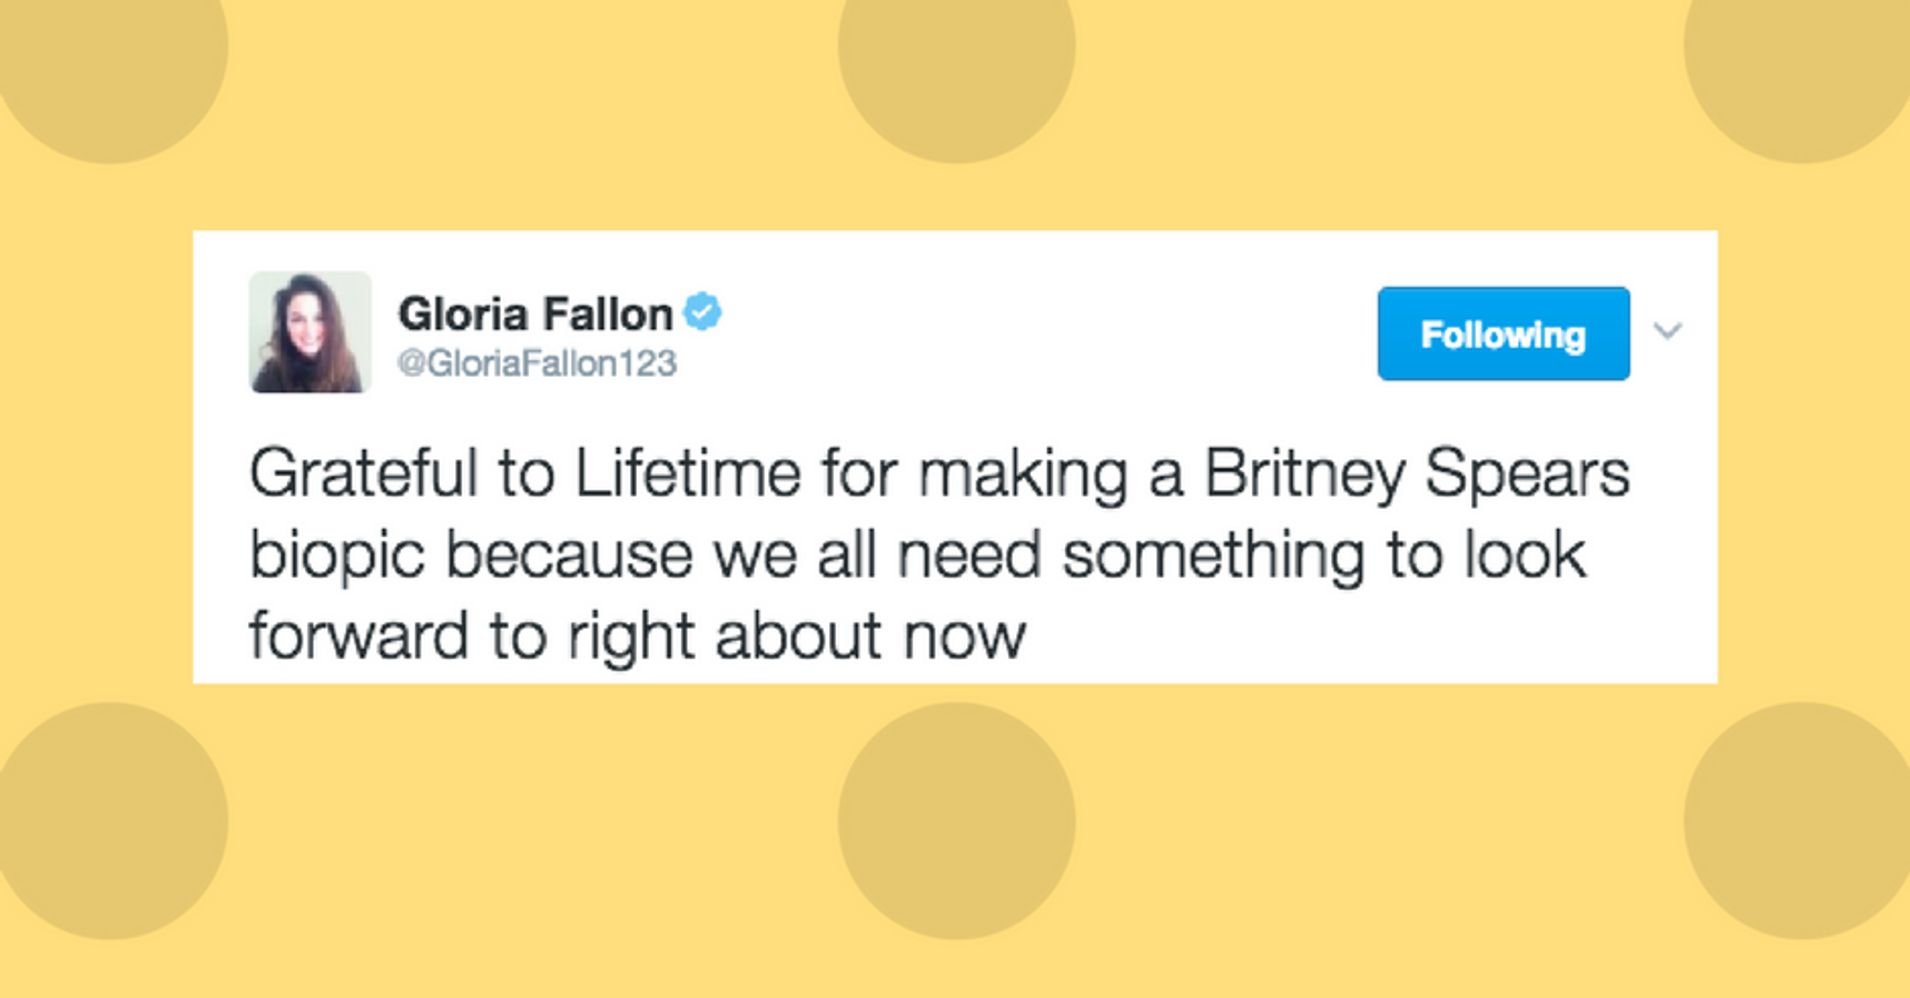 The Funniest Tweets From Women This Week HuffPost - The 19 funniest things tweeted by women in 2016